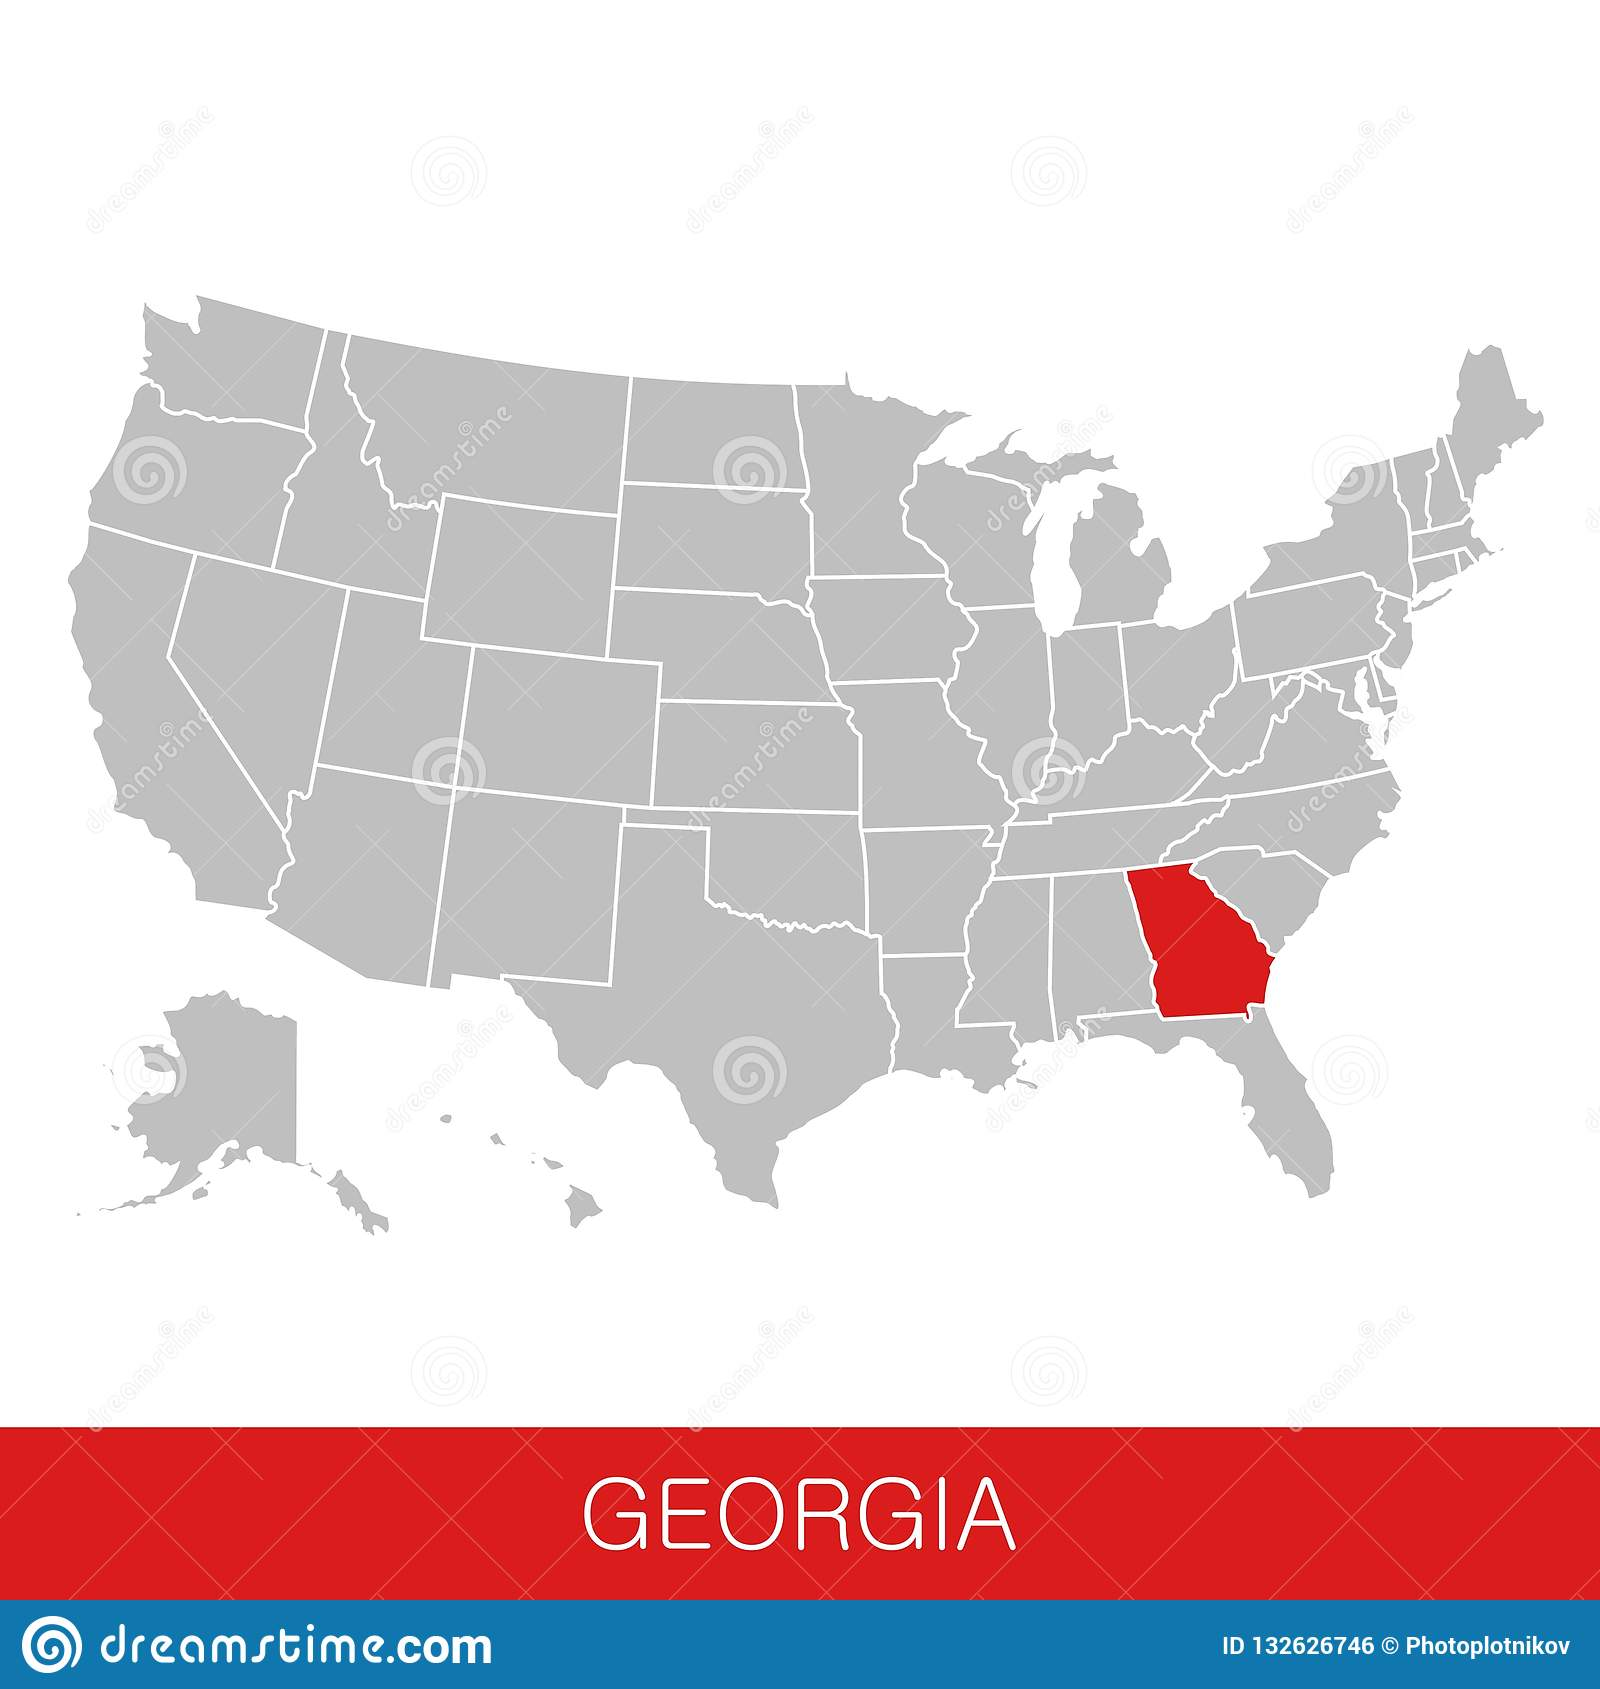 Map Of State Of Georgia Usa.United States Of America With The State Of Georgia Selected Map Of